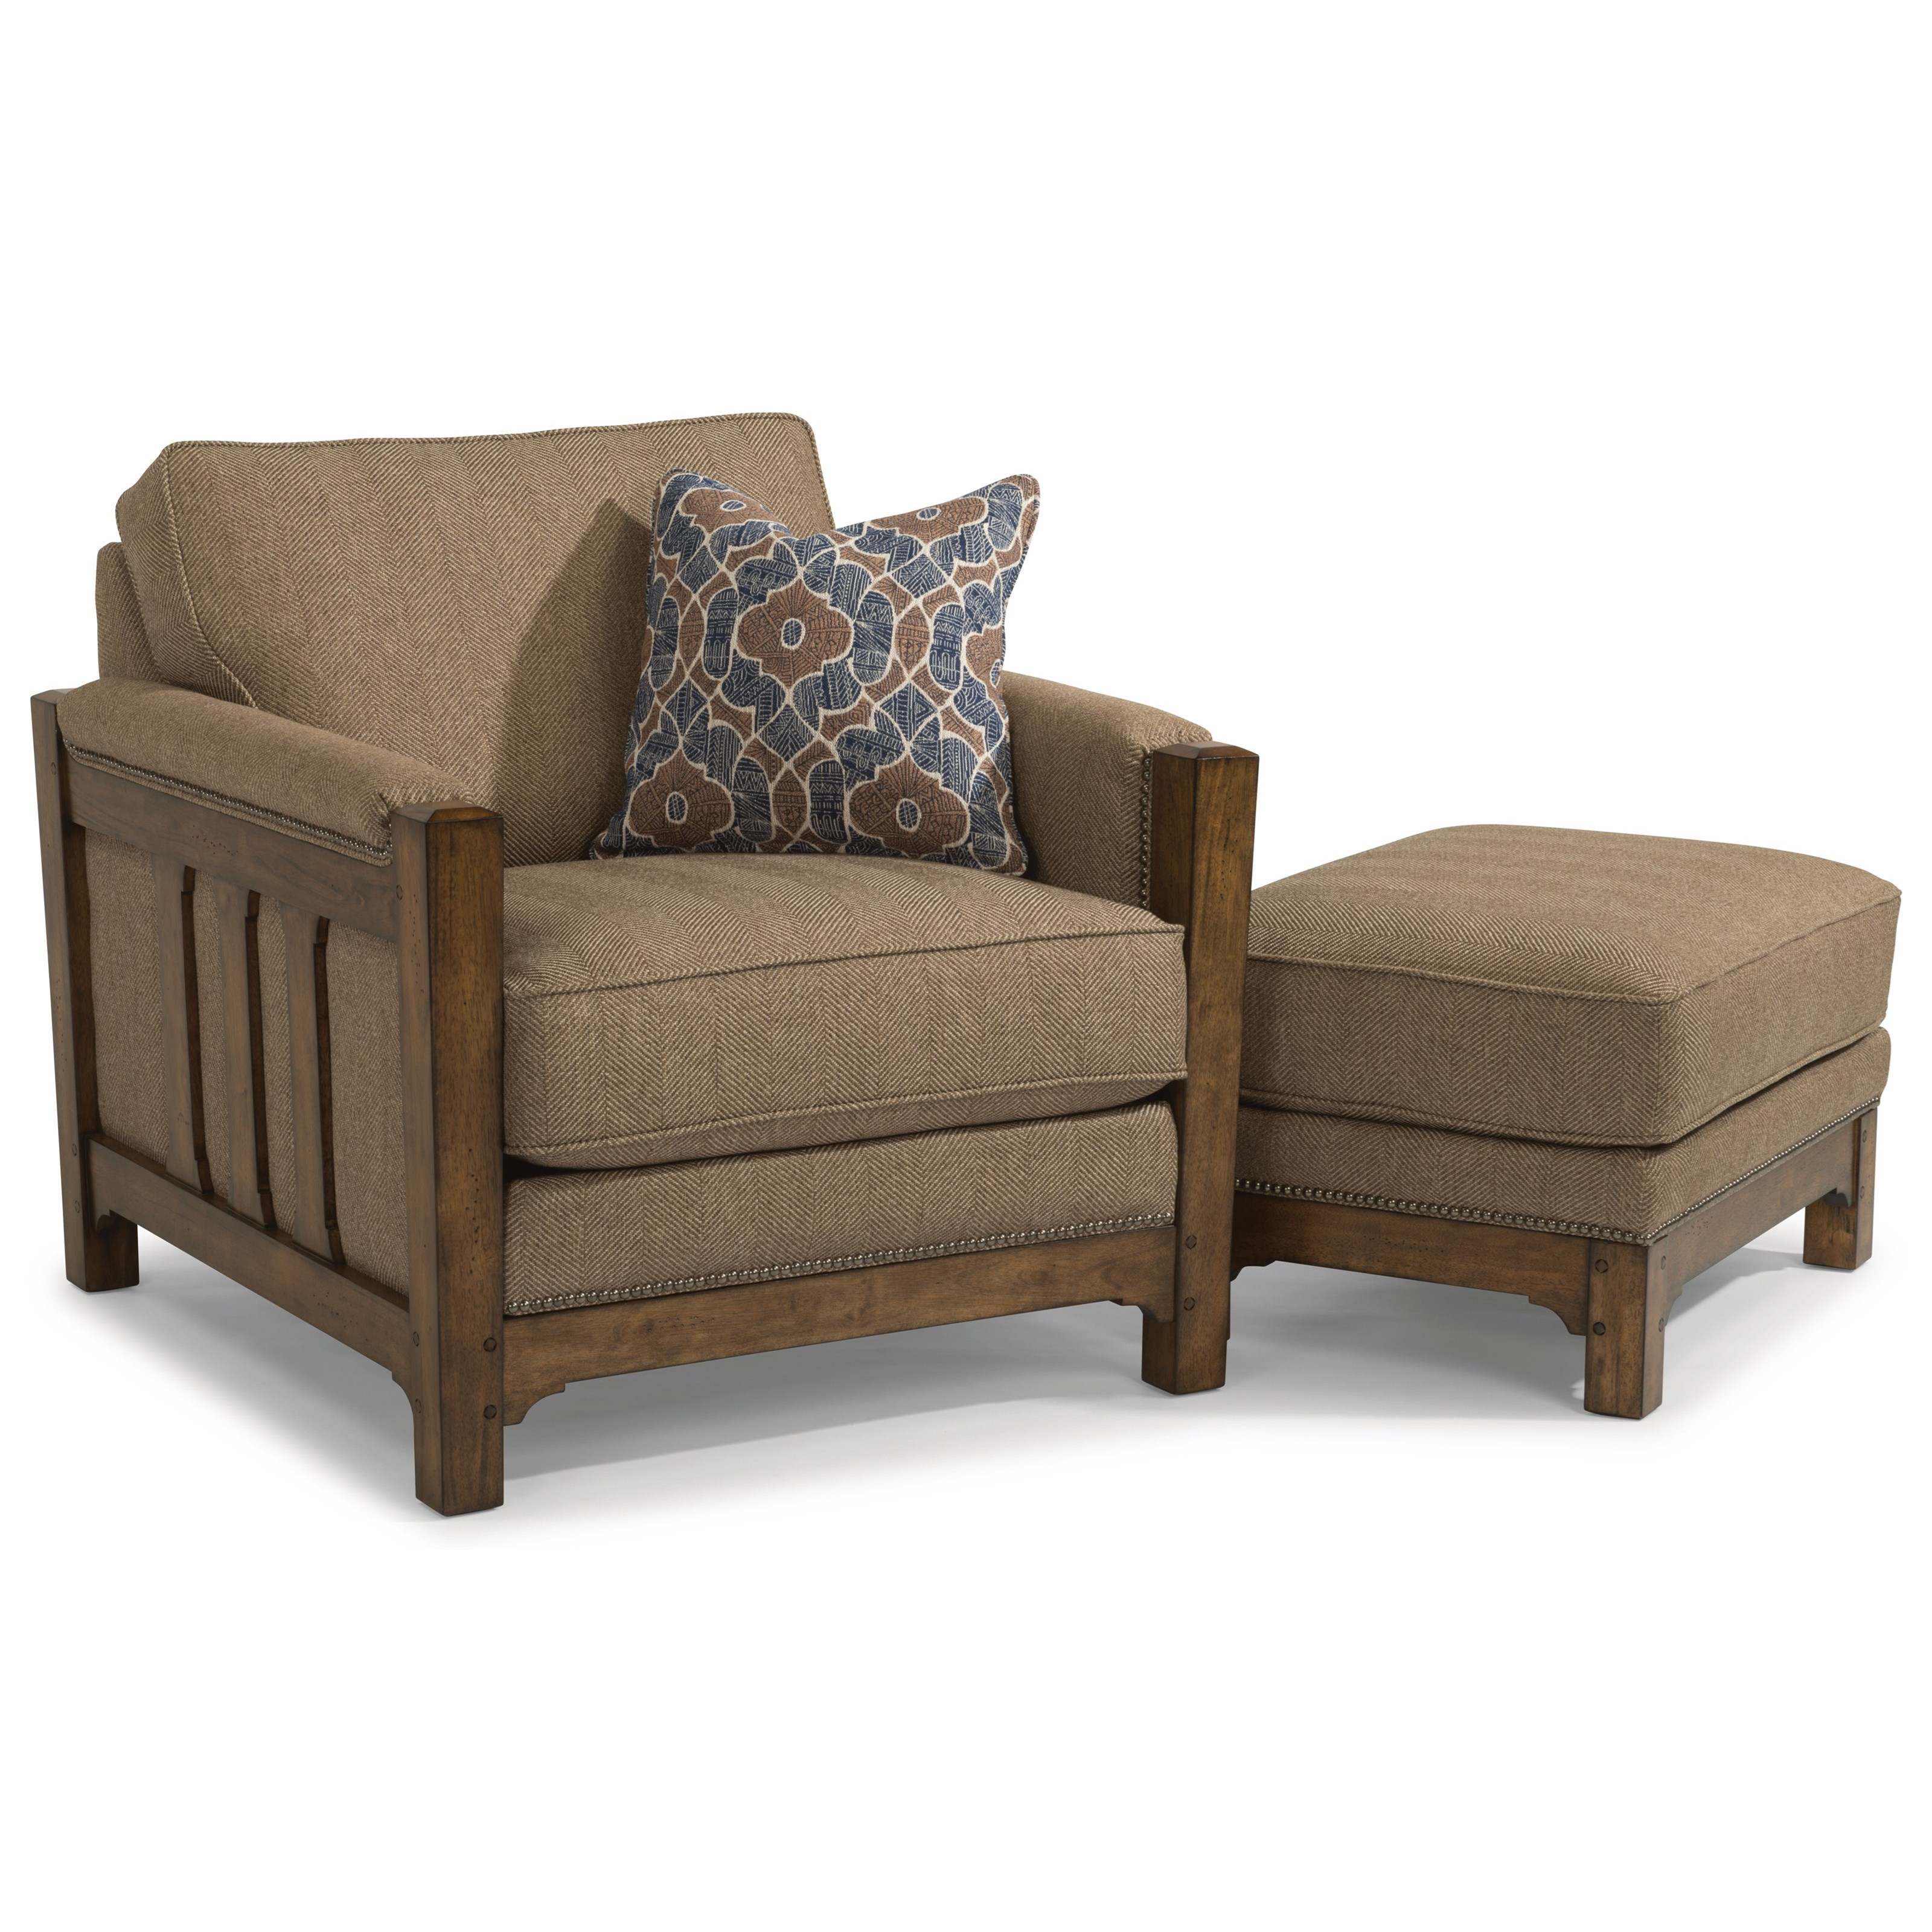 Flexsteel Sofa Mission: Flexsteel Sonora Mission Chair With Nailhead Trim